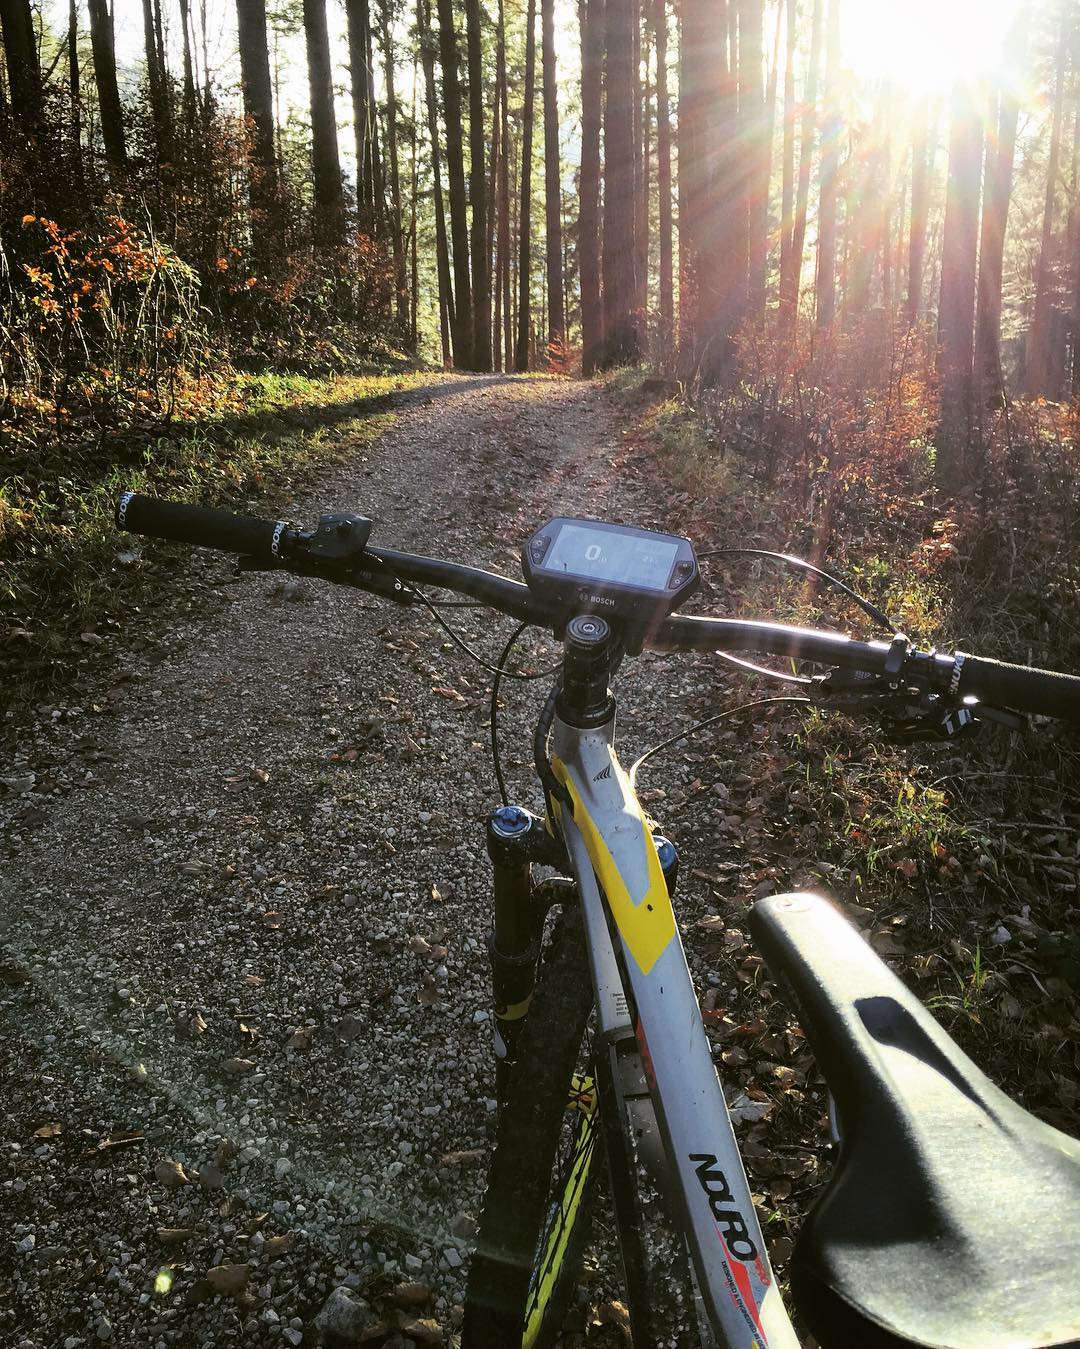 Hello sunshine. #NDURO #XDURO #RIDE #eperformance #Haibike #mtb #mountainbike #bosch